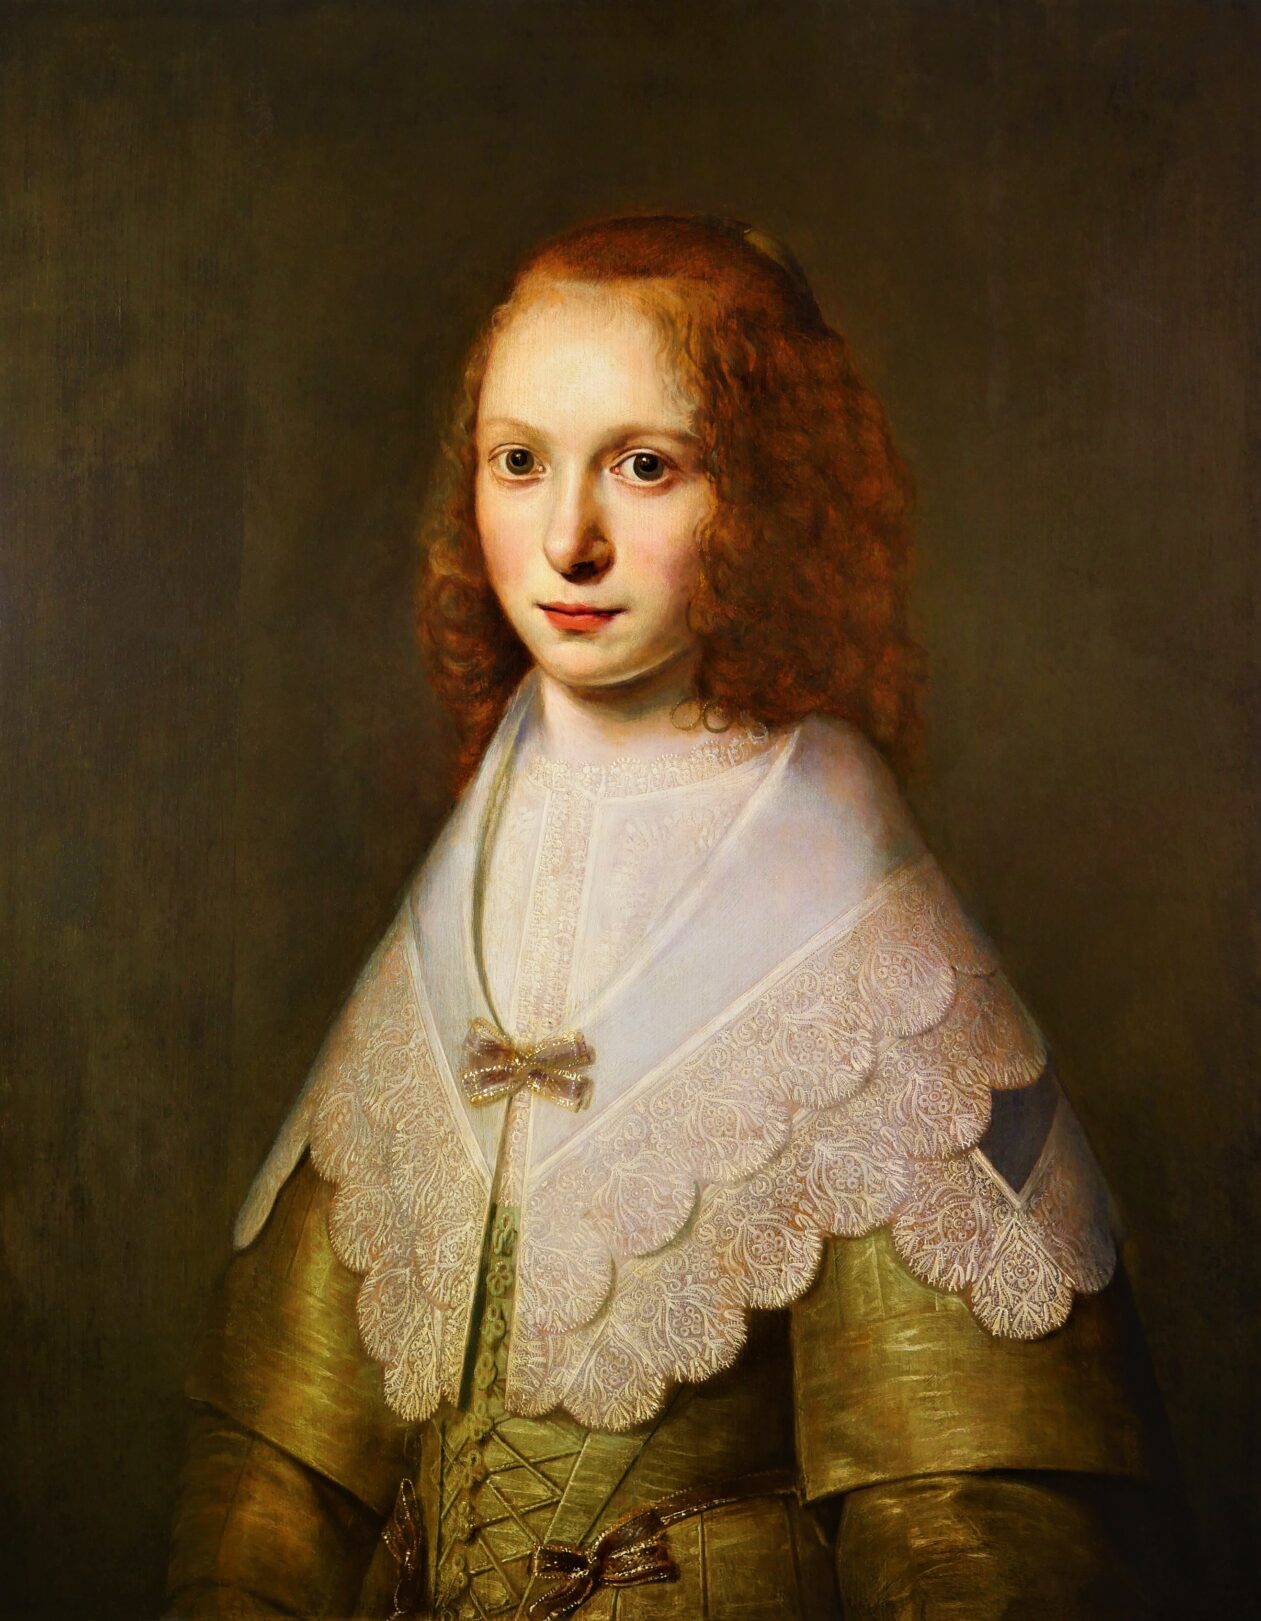 Pieter Hermansz. Verelst (1608-1675), A Portrait of a Young Girl, Signed and dated 'P. VERELST: 1642:'